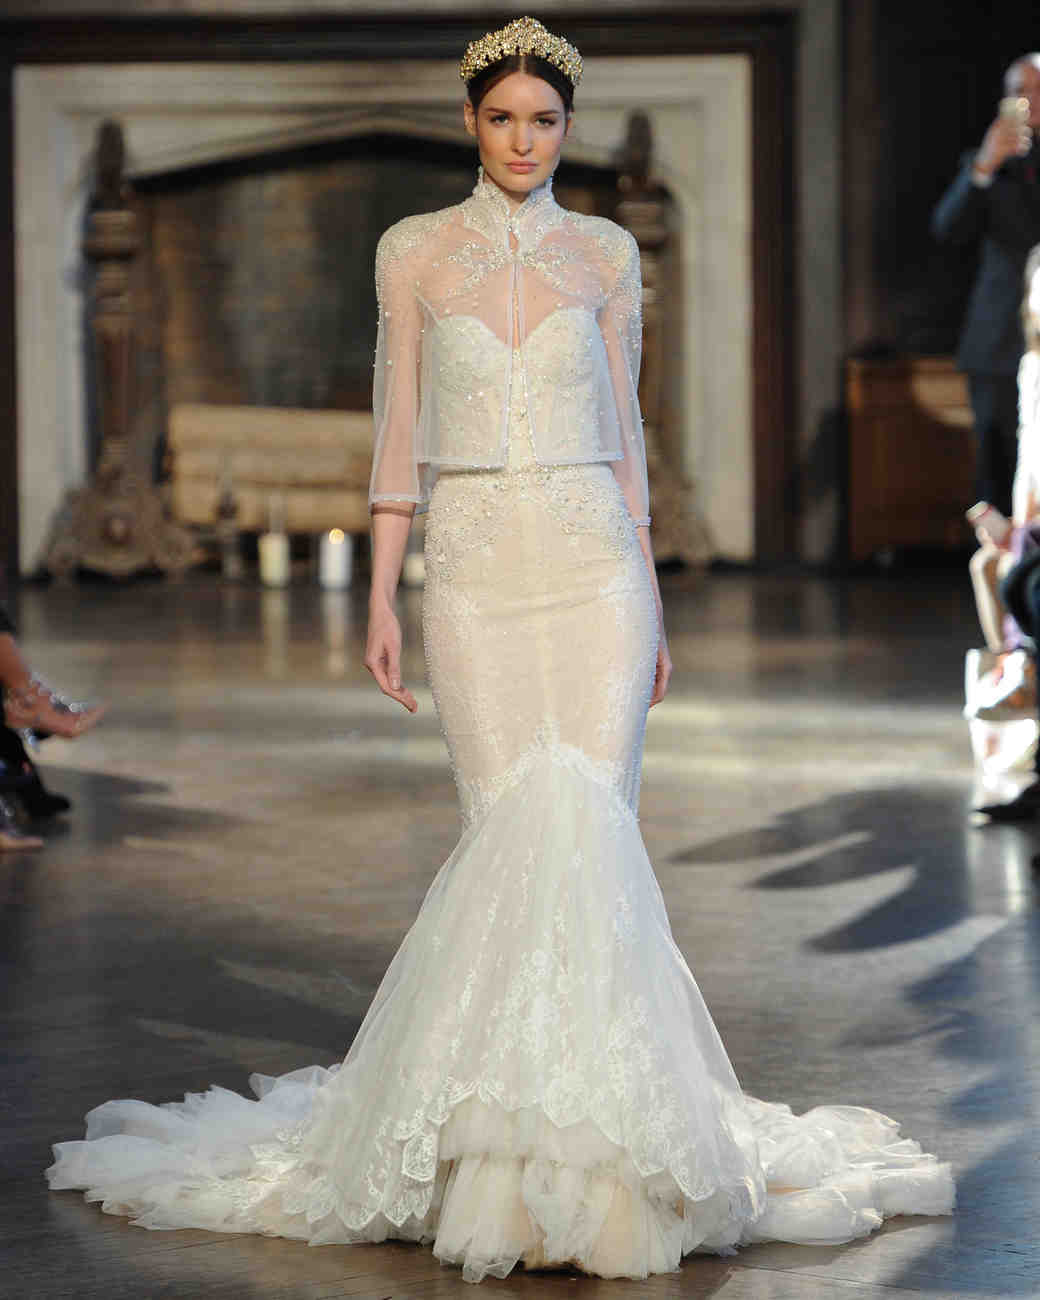 Inbal Dror Fall 2015 Bridal Show | Martha Stewart Weddings